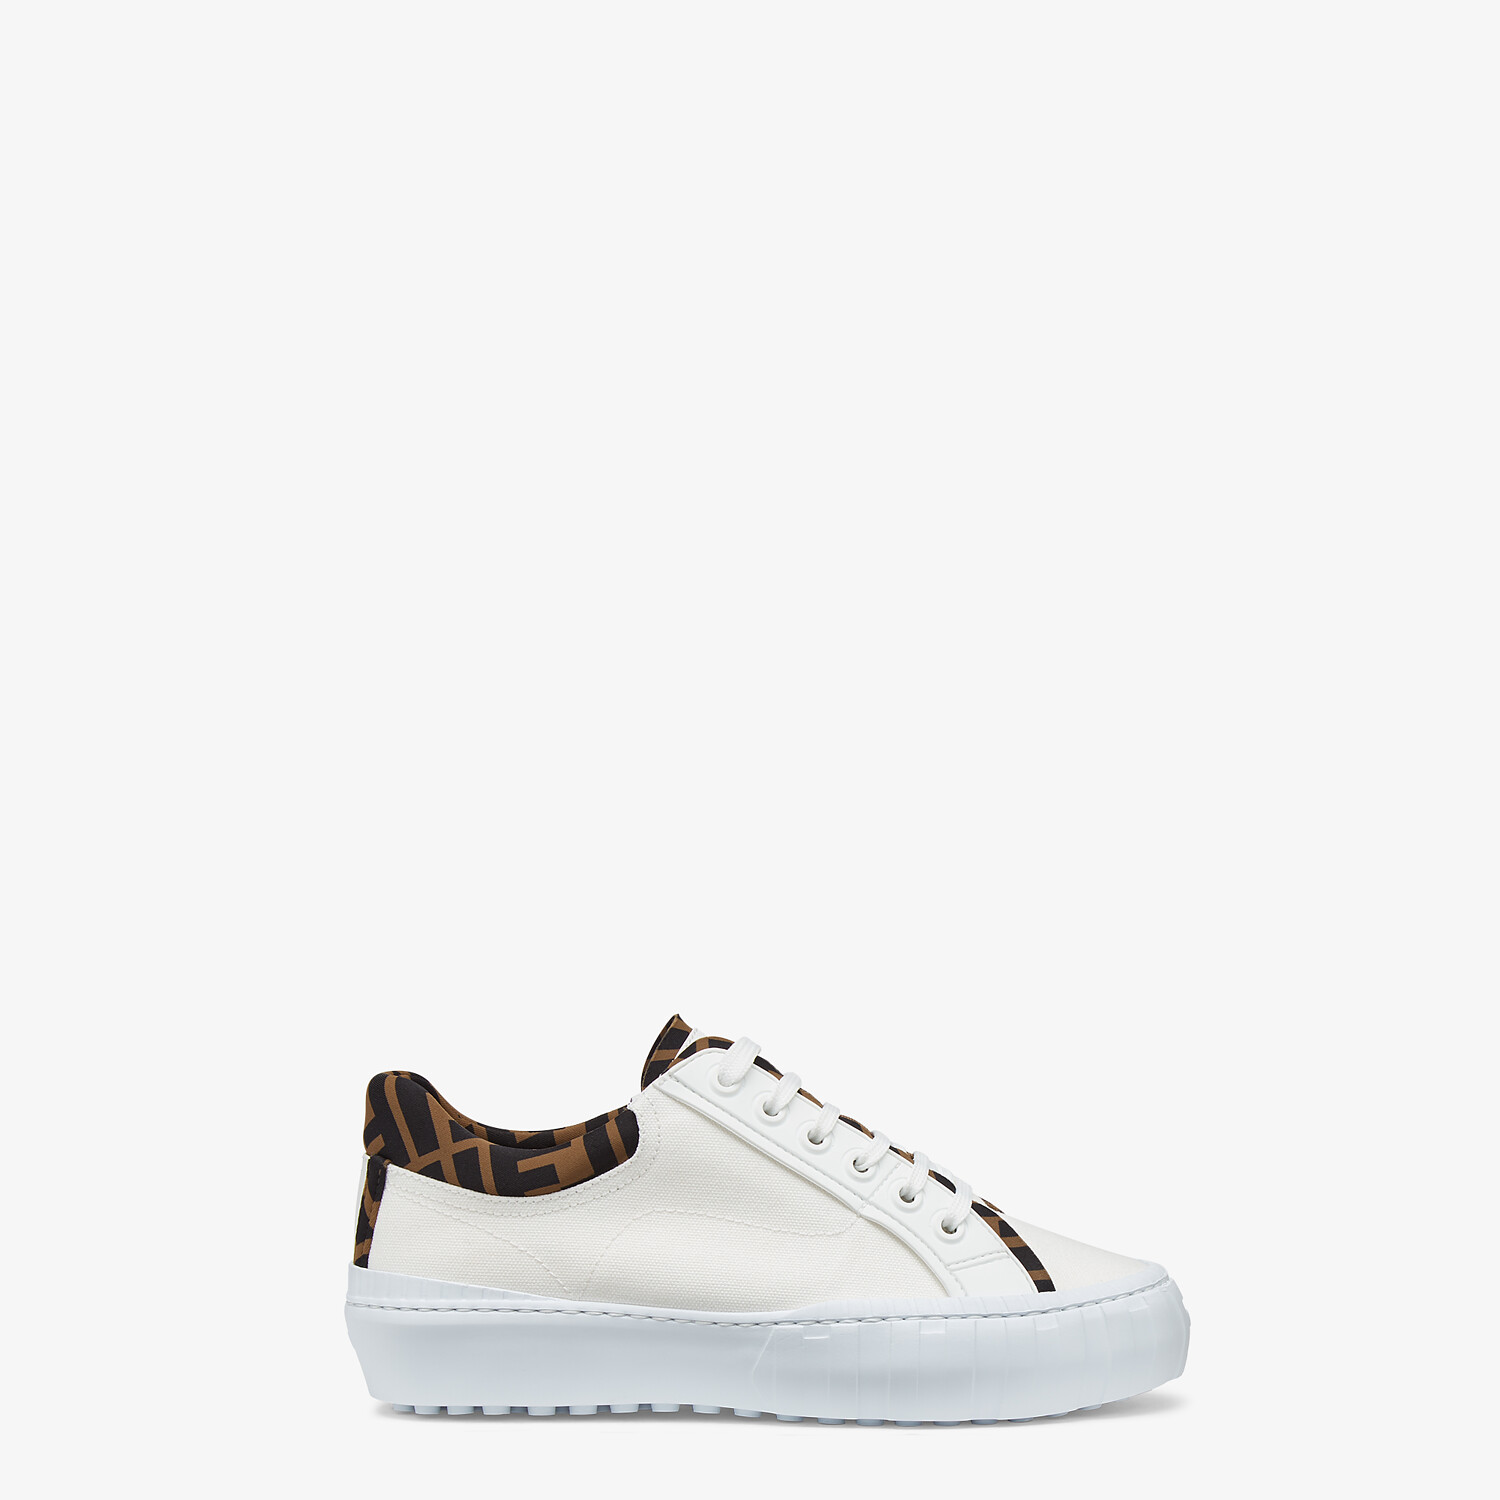 FENDI FENDI FORCE - White canvas and TPU low-tops - view 1 detail